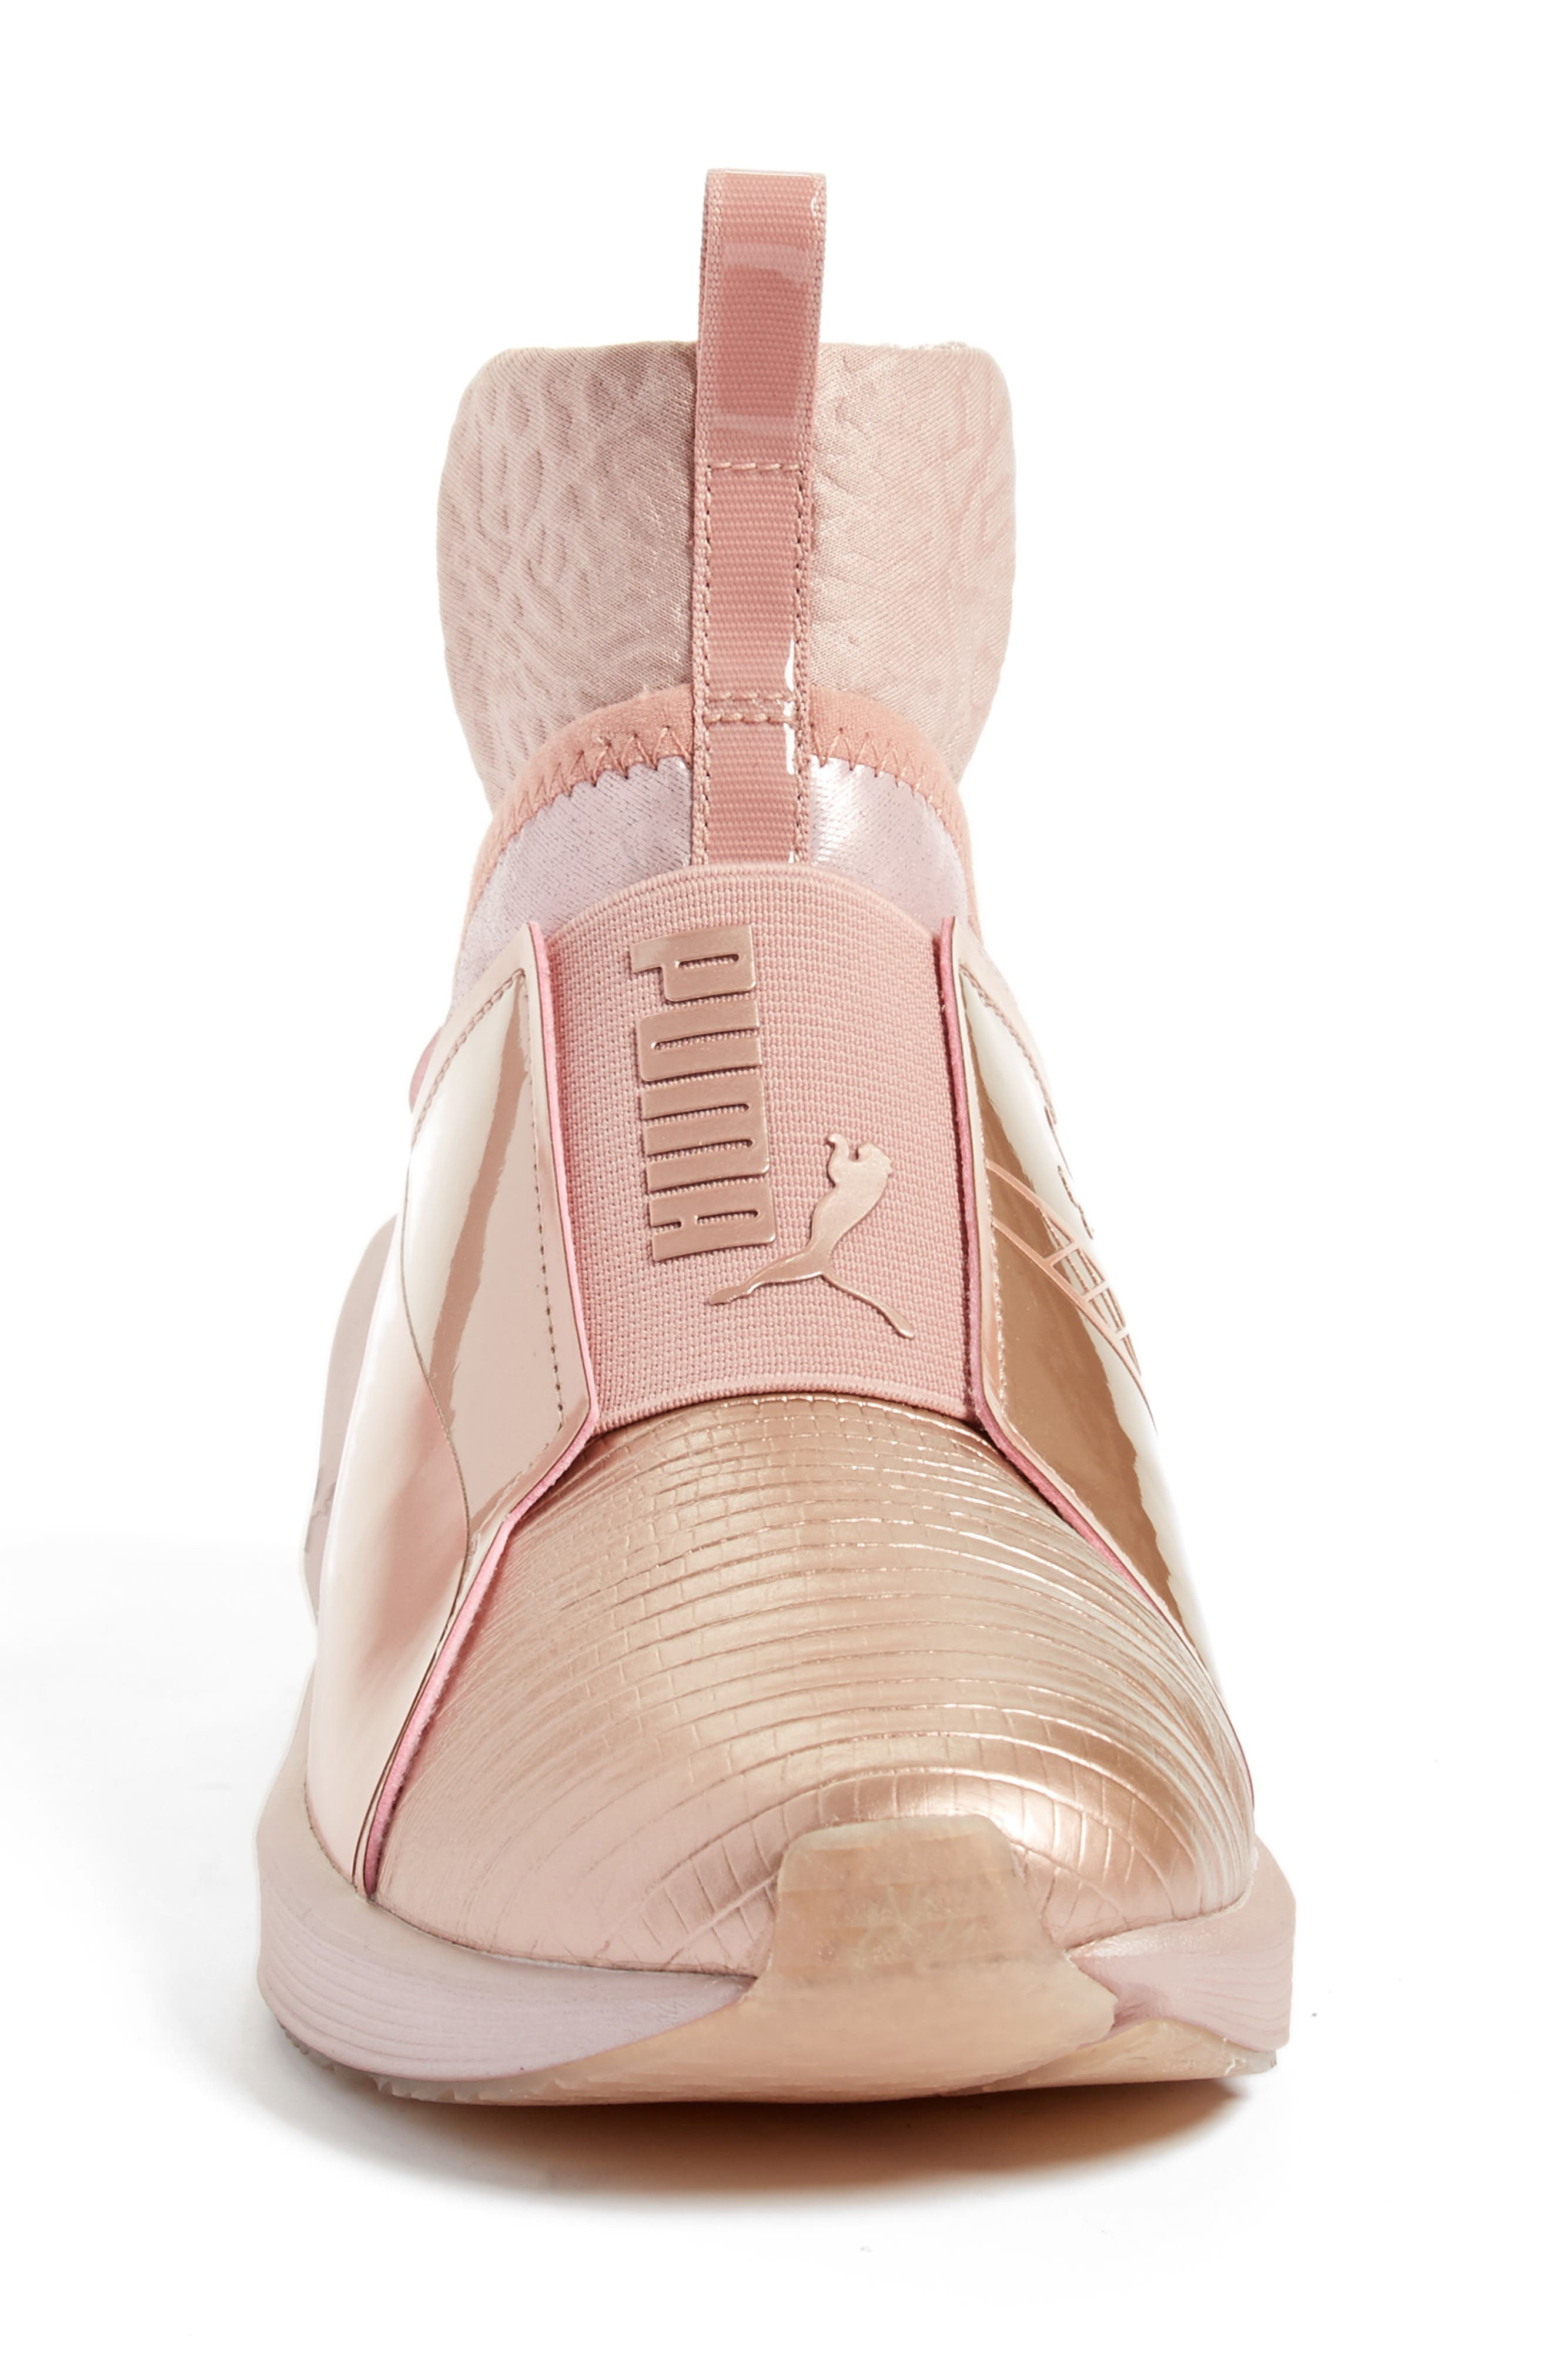 Fierce Metallic High Top Sneaker,                             Alternate thumbnail 4, color,                             220